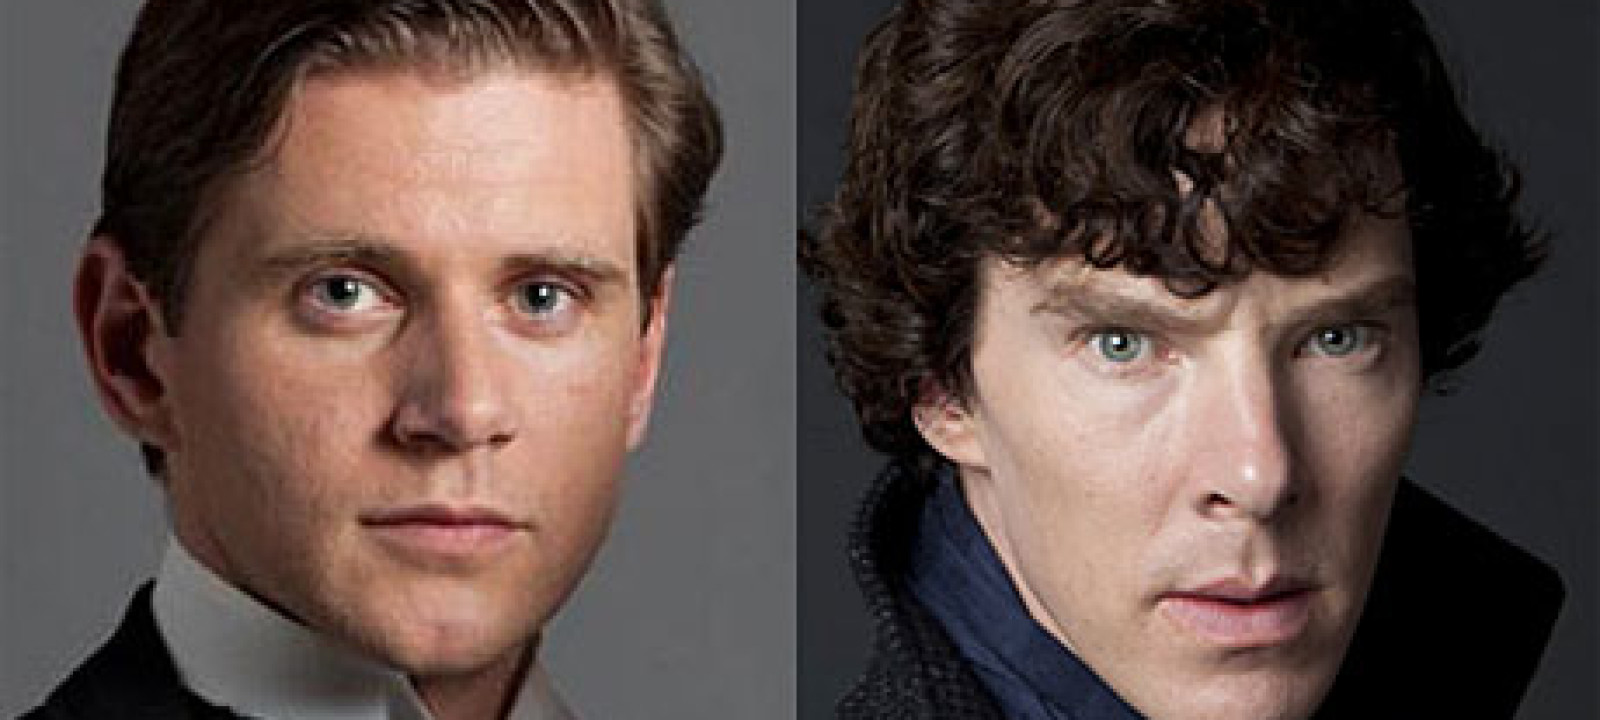 Alan Leech and Benedict Cumberbatch